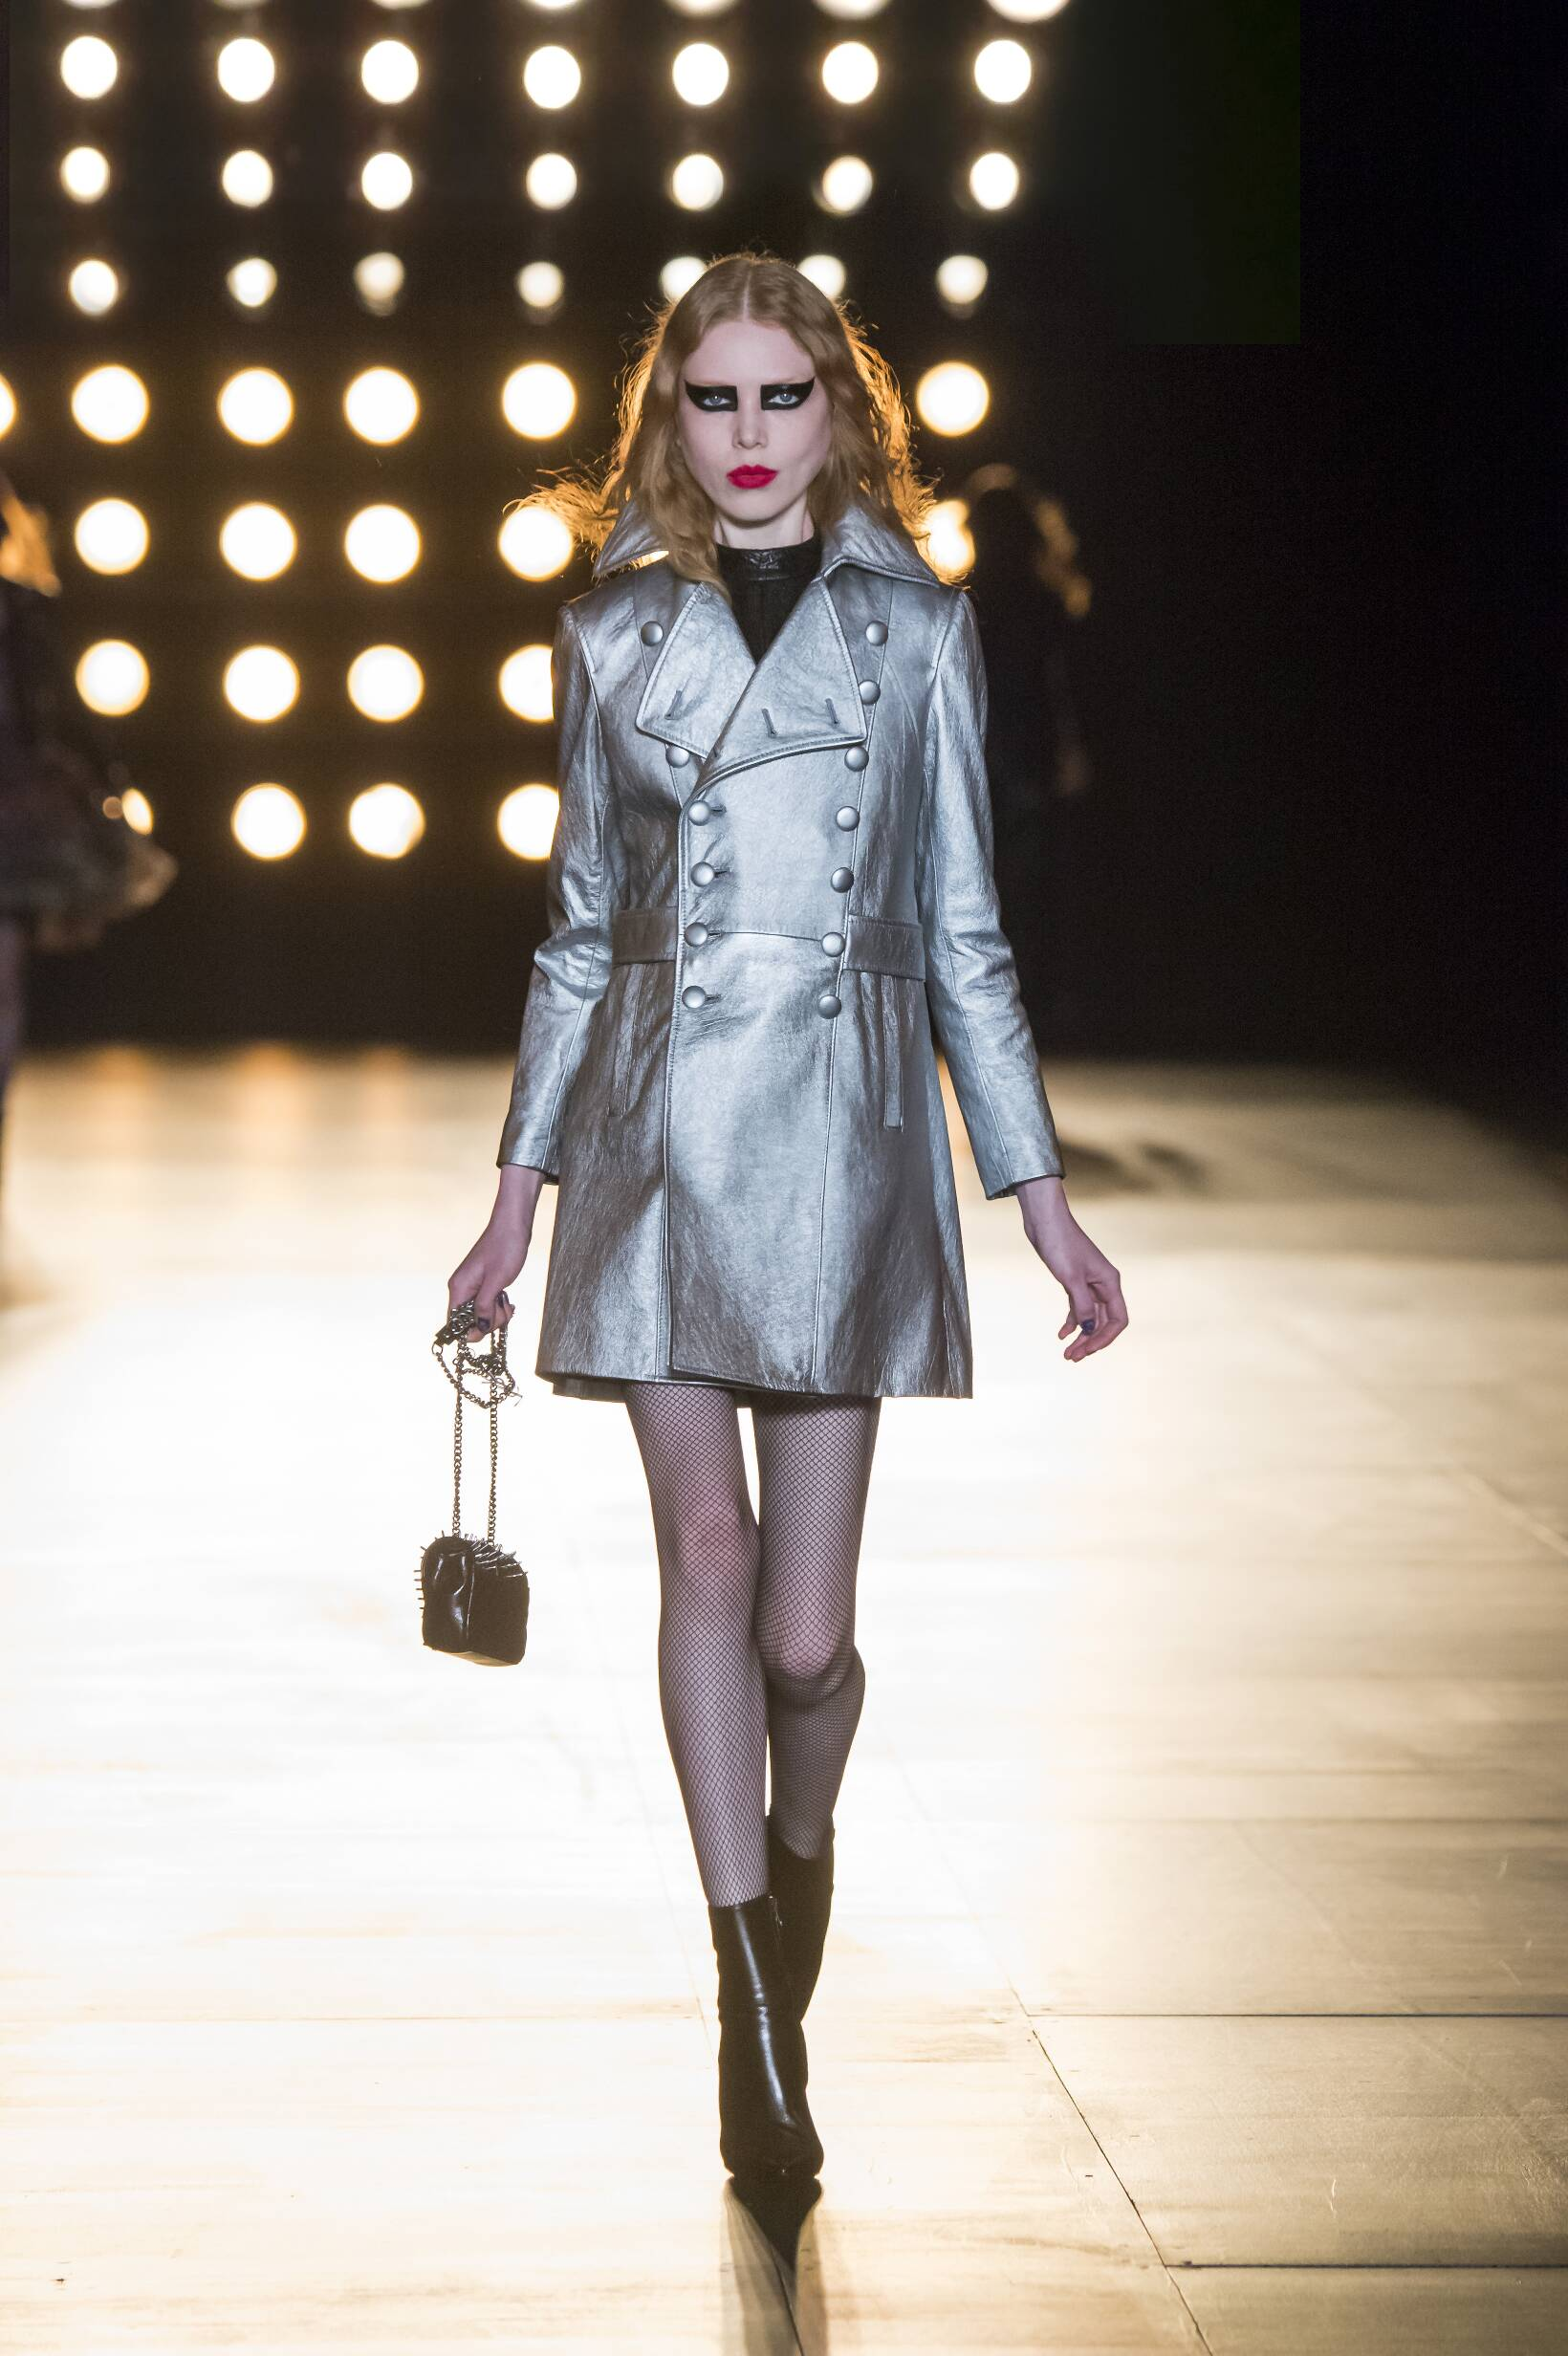 Runway Saint Laurent Fall Winter 2015 16 Women's Collection Paris Fashion Week